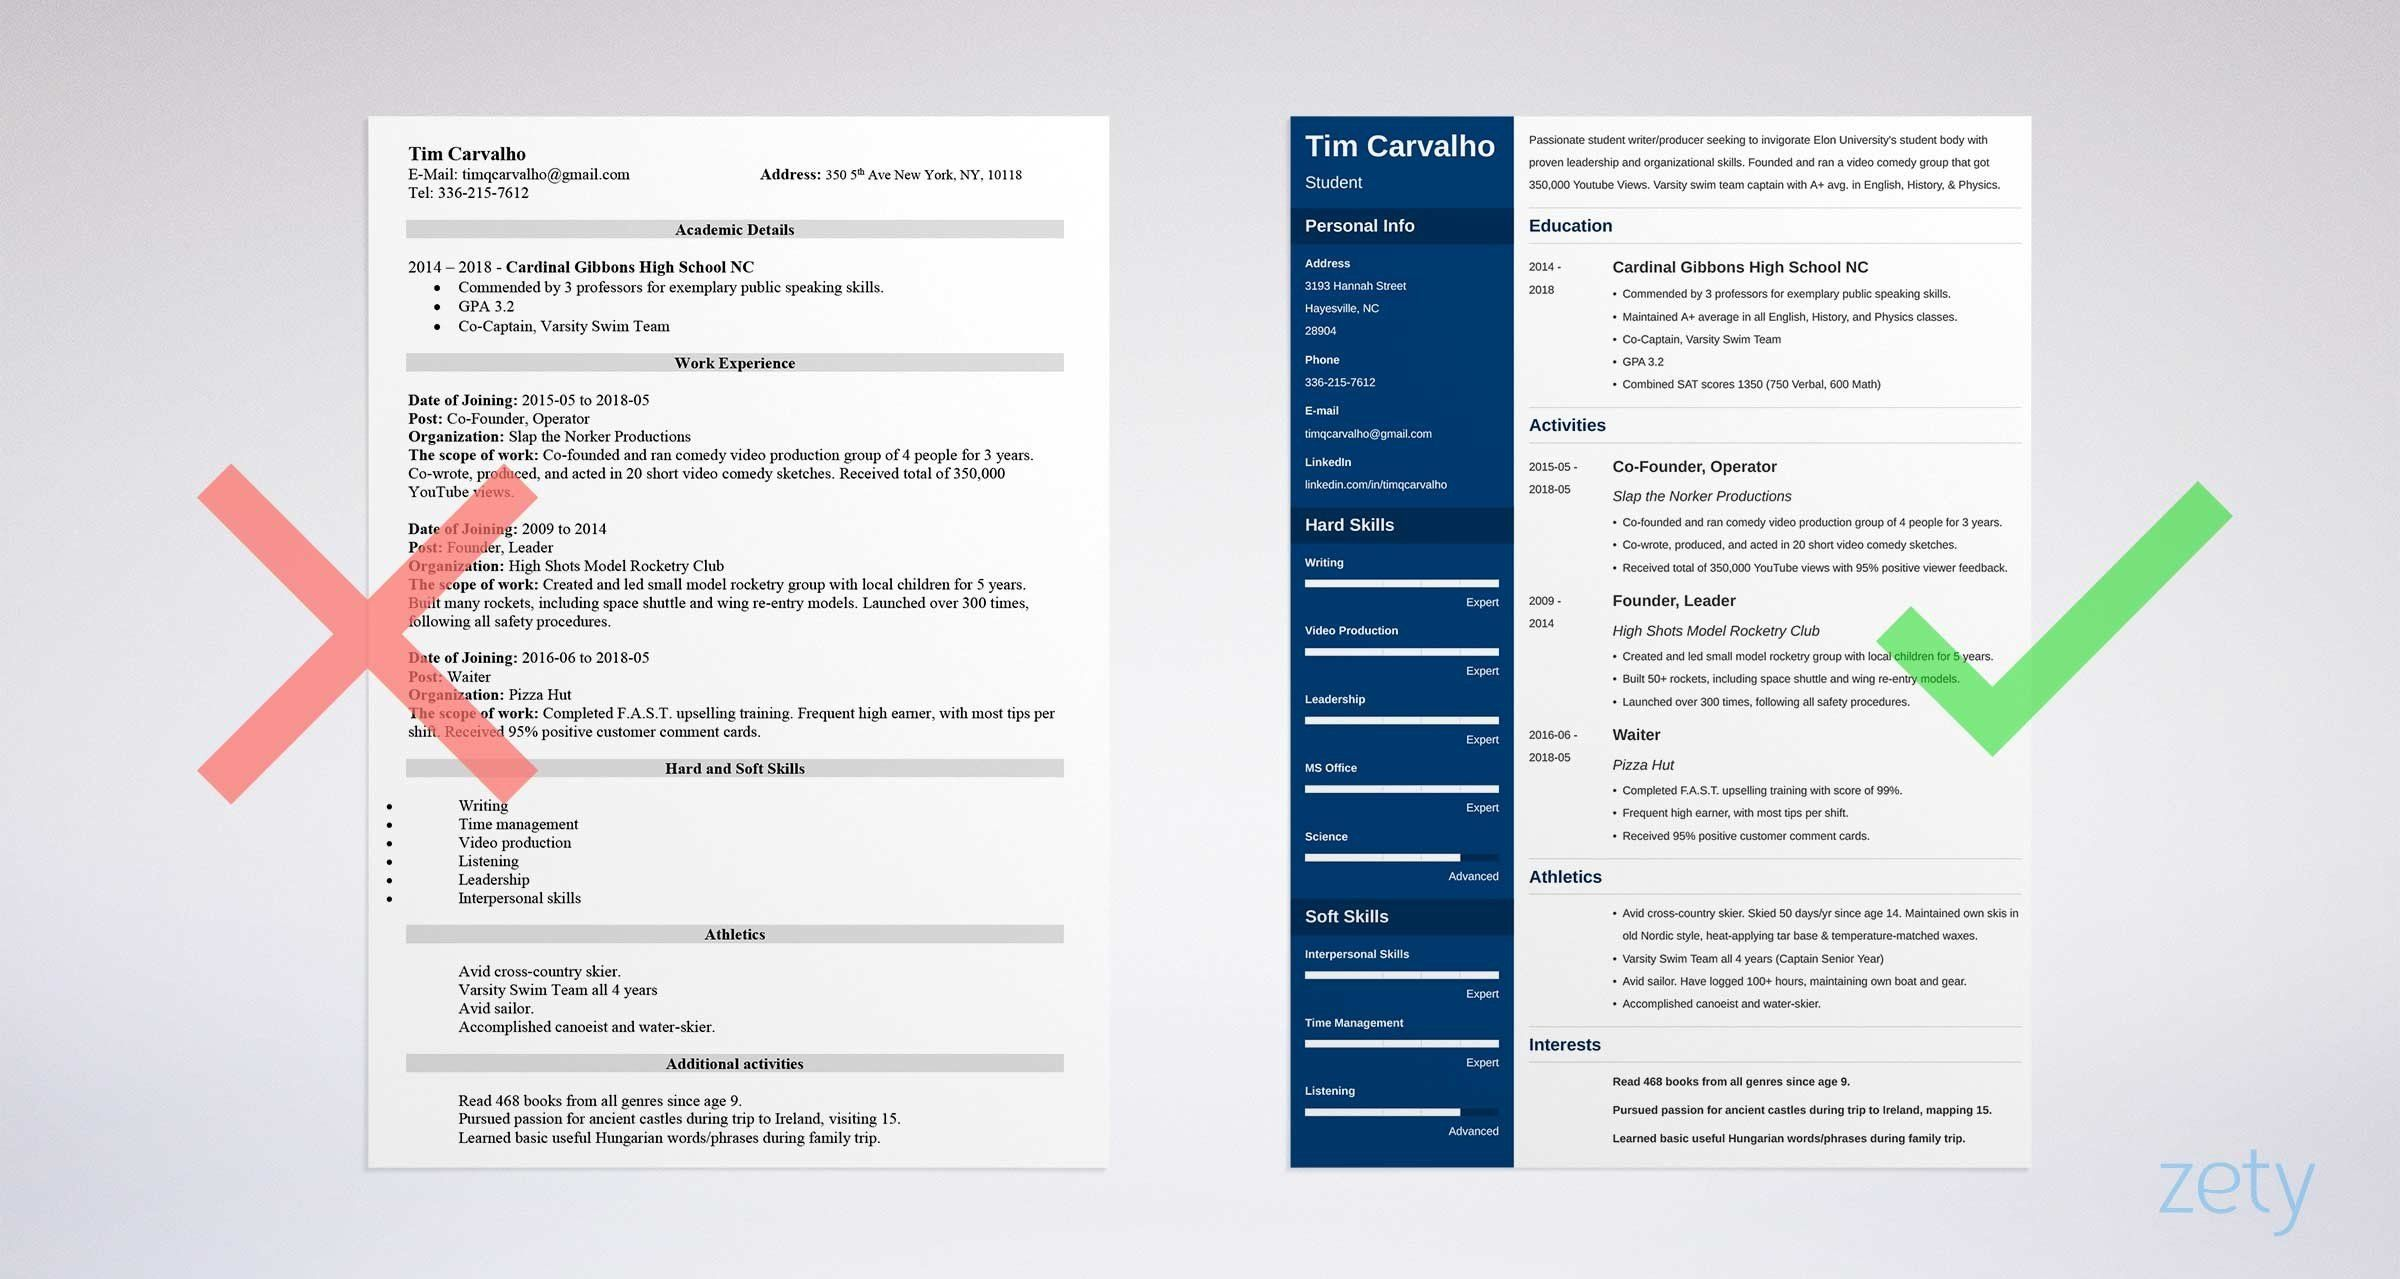 College Resume Template for High School Students (2020) in